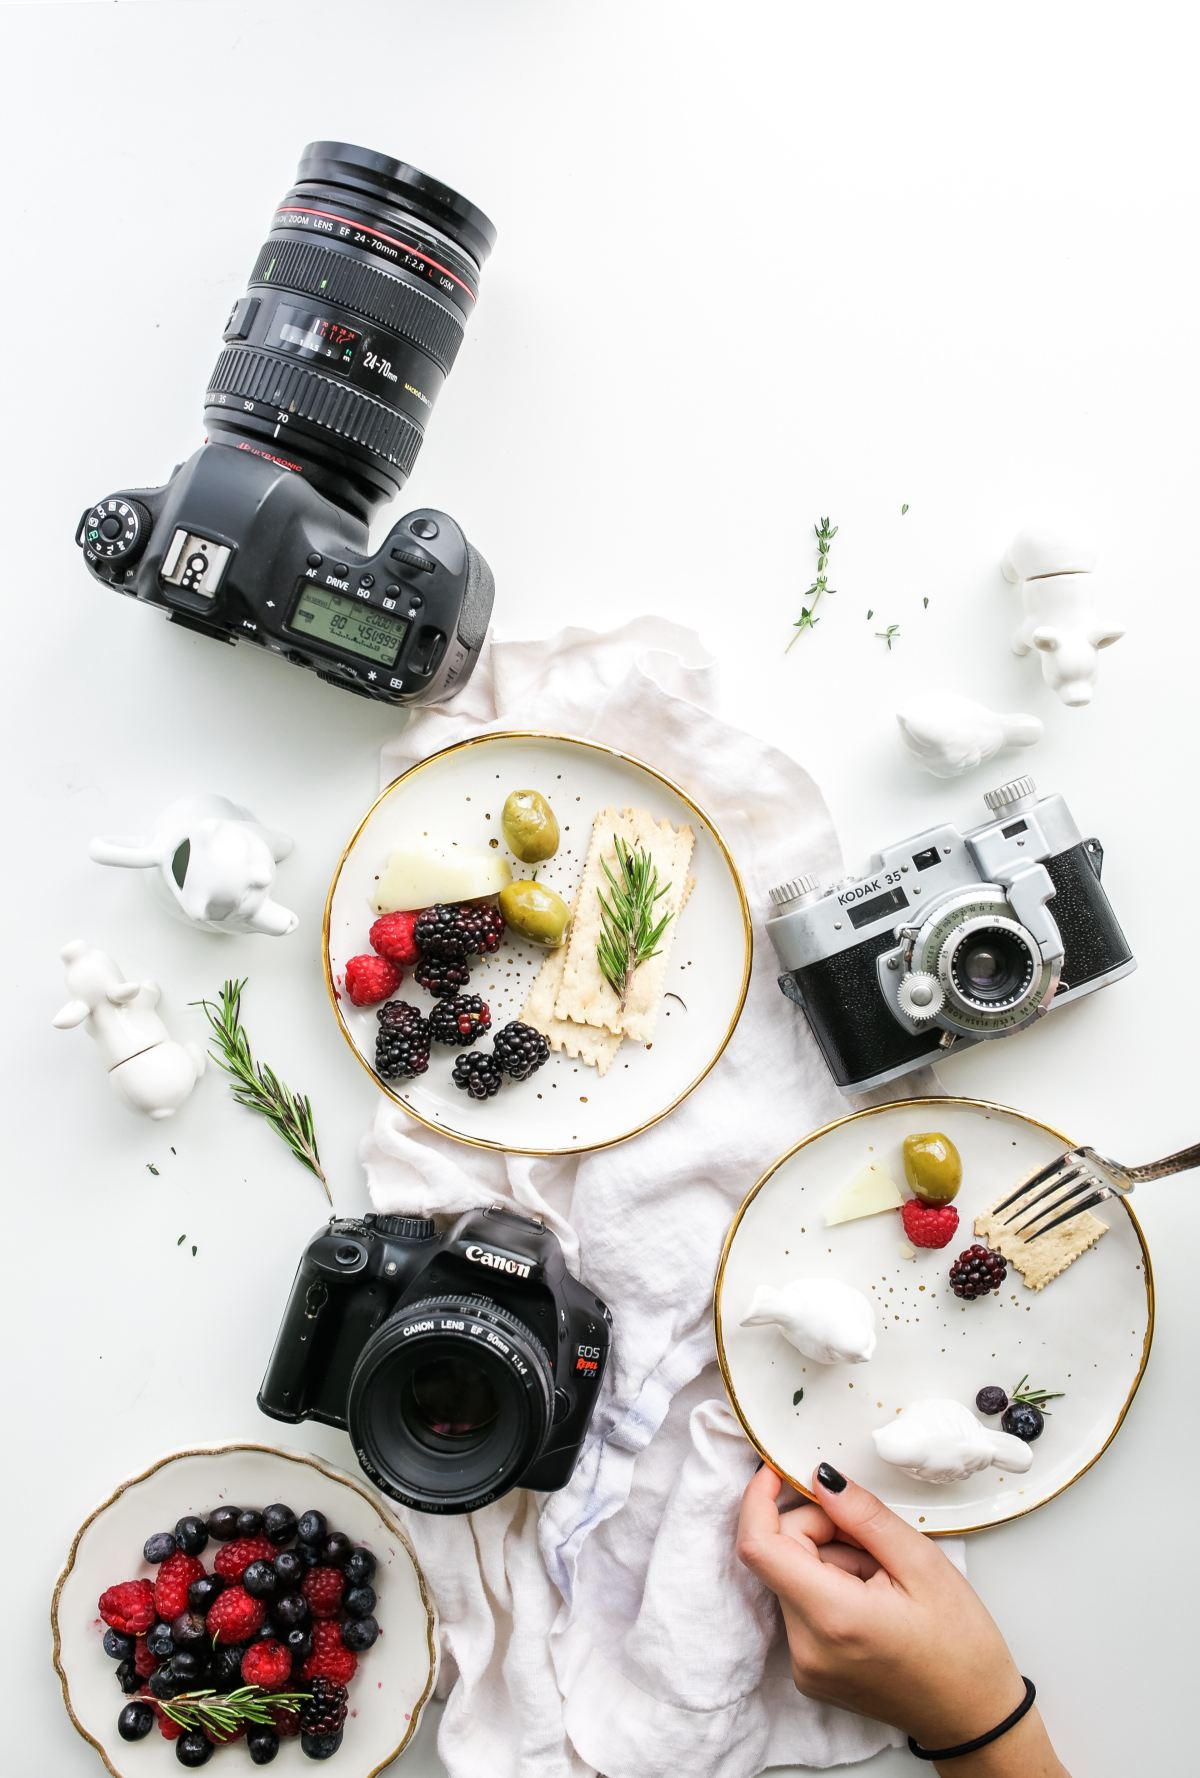 Picture of three cameras on a restaurant table with plates of food